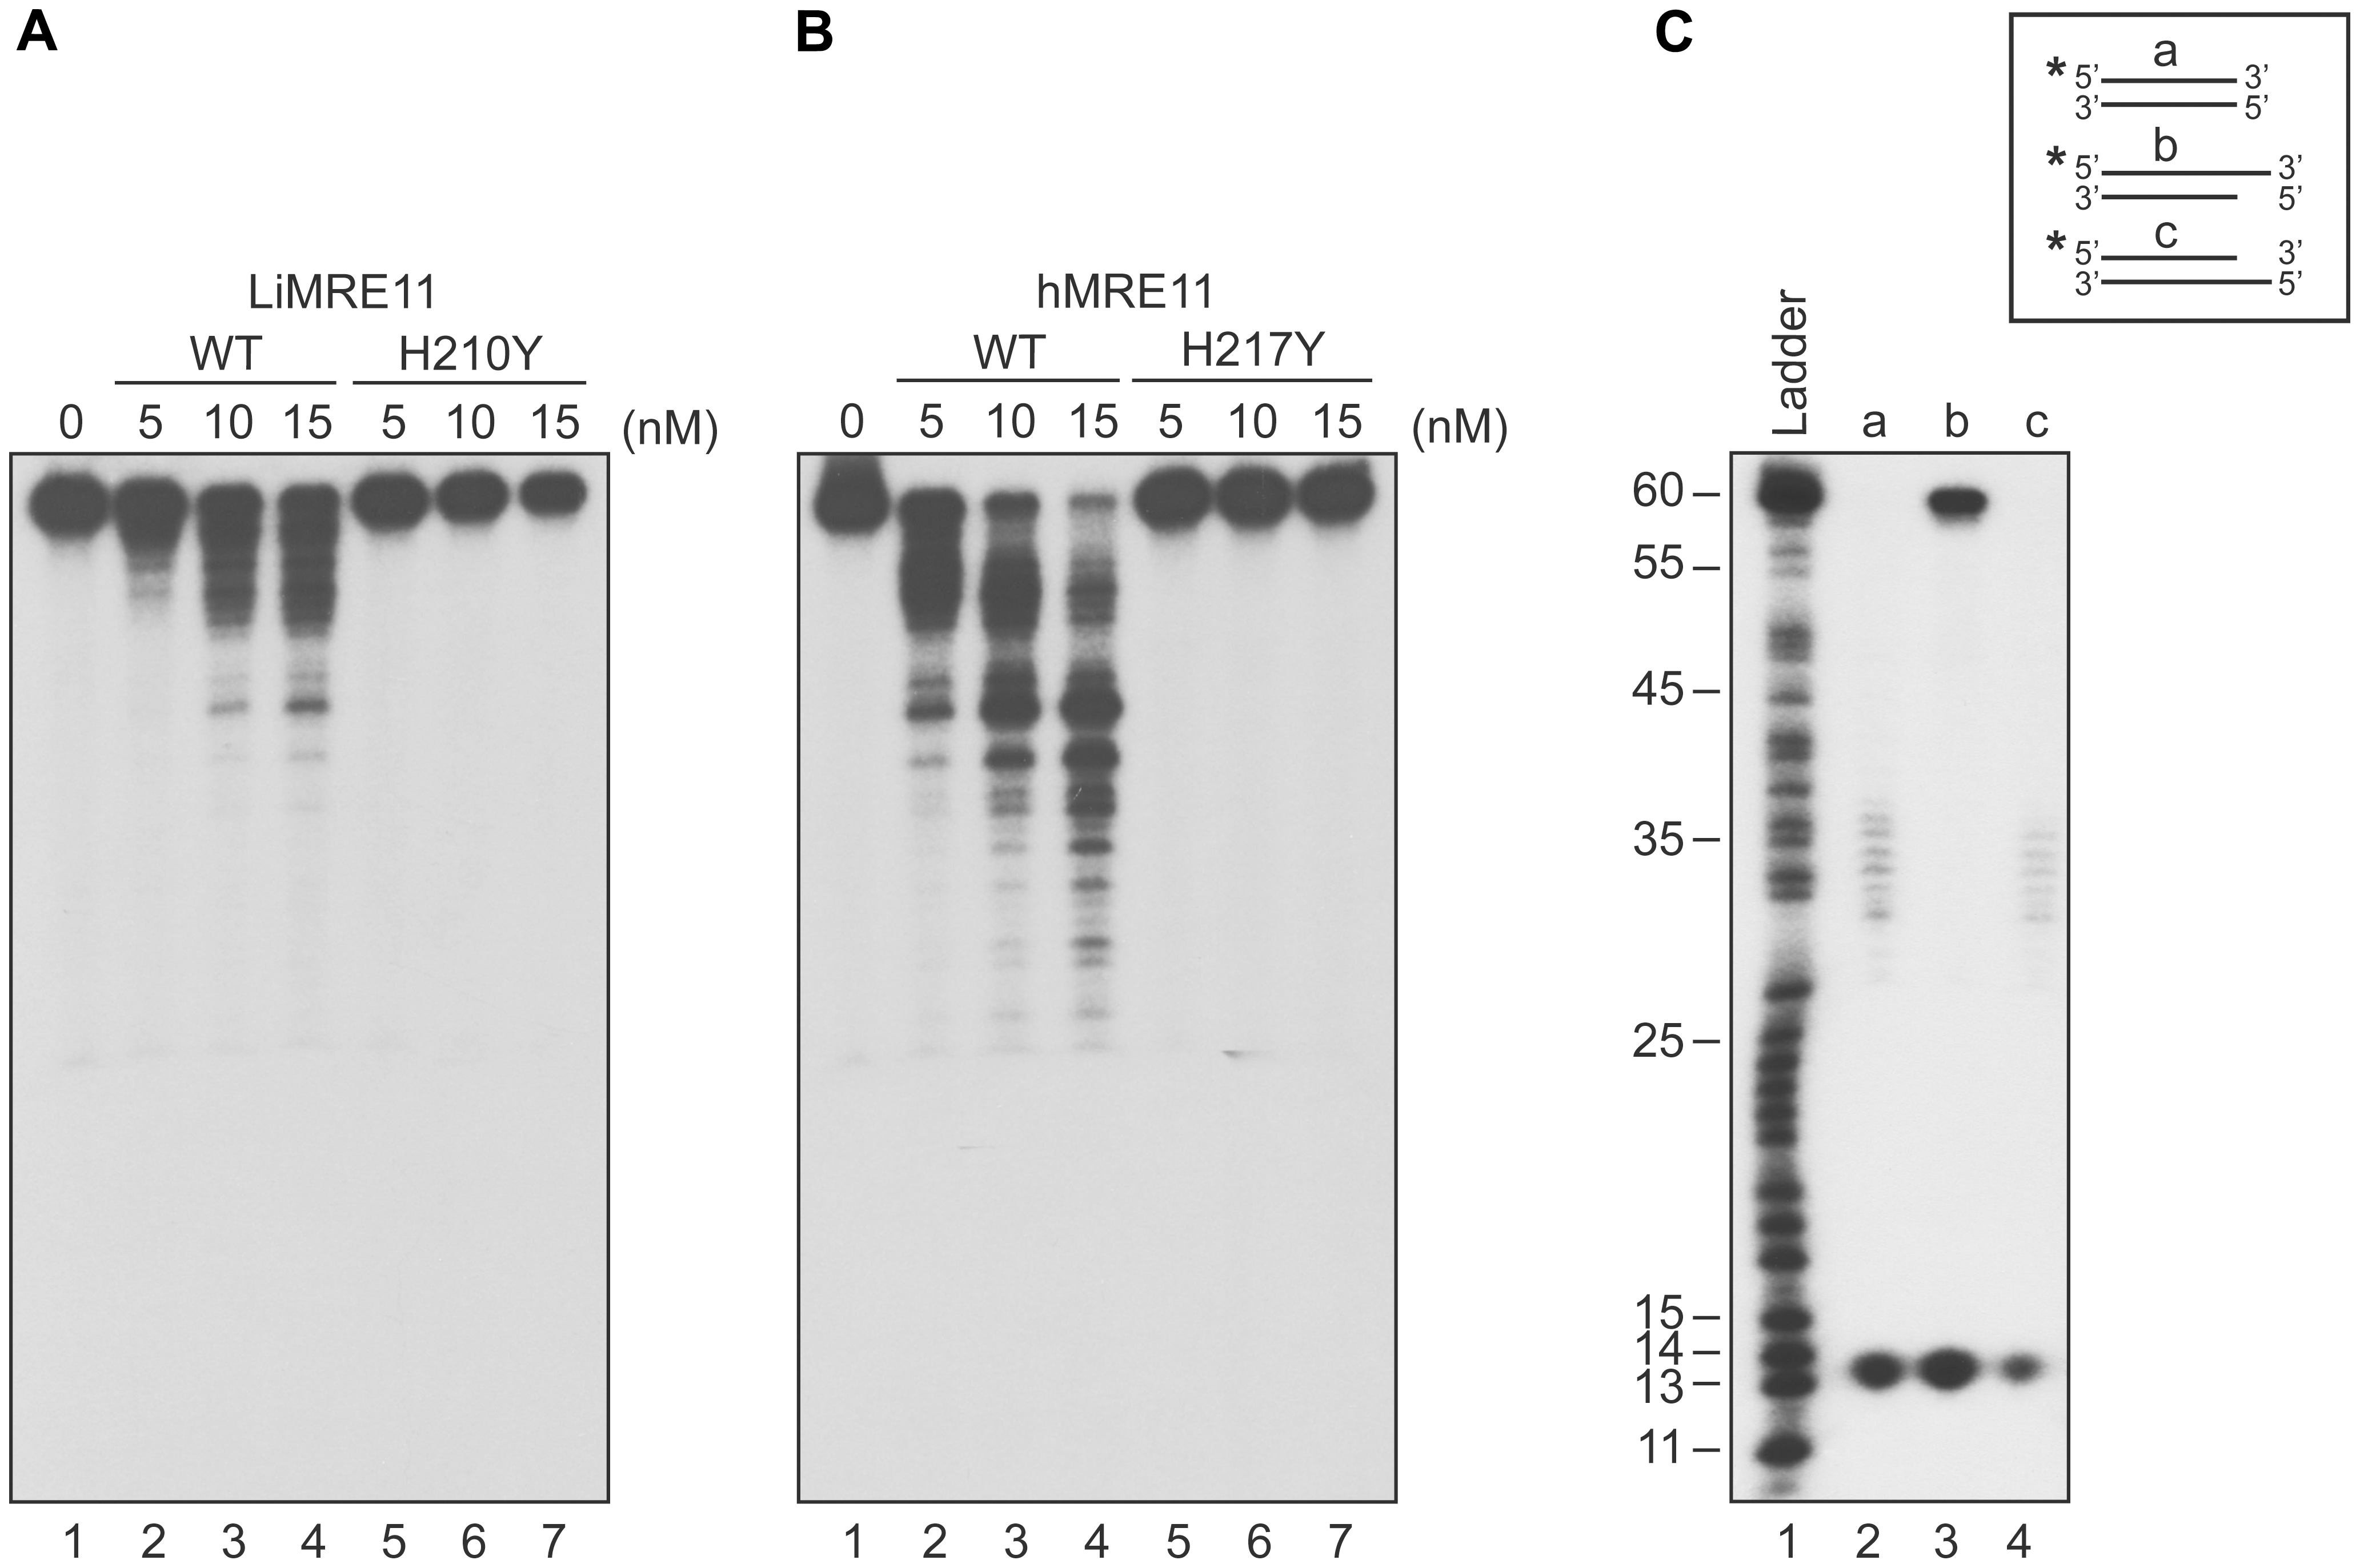 Exonuclease assays of MRE11 proteins.